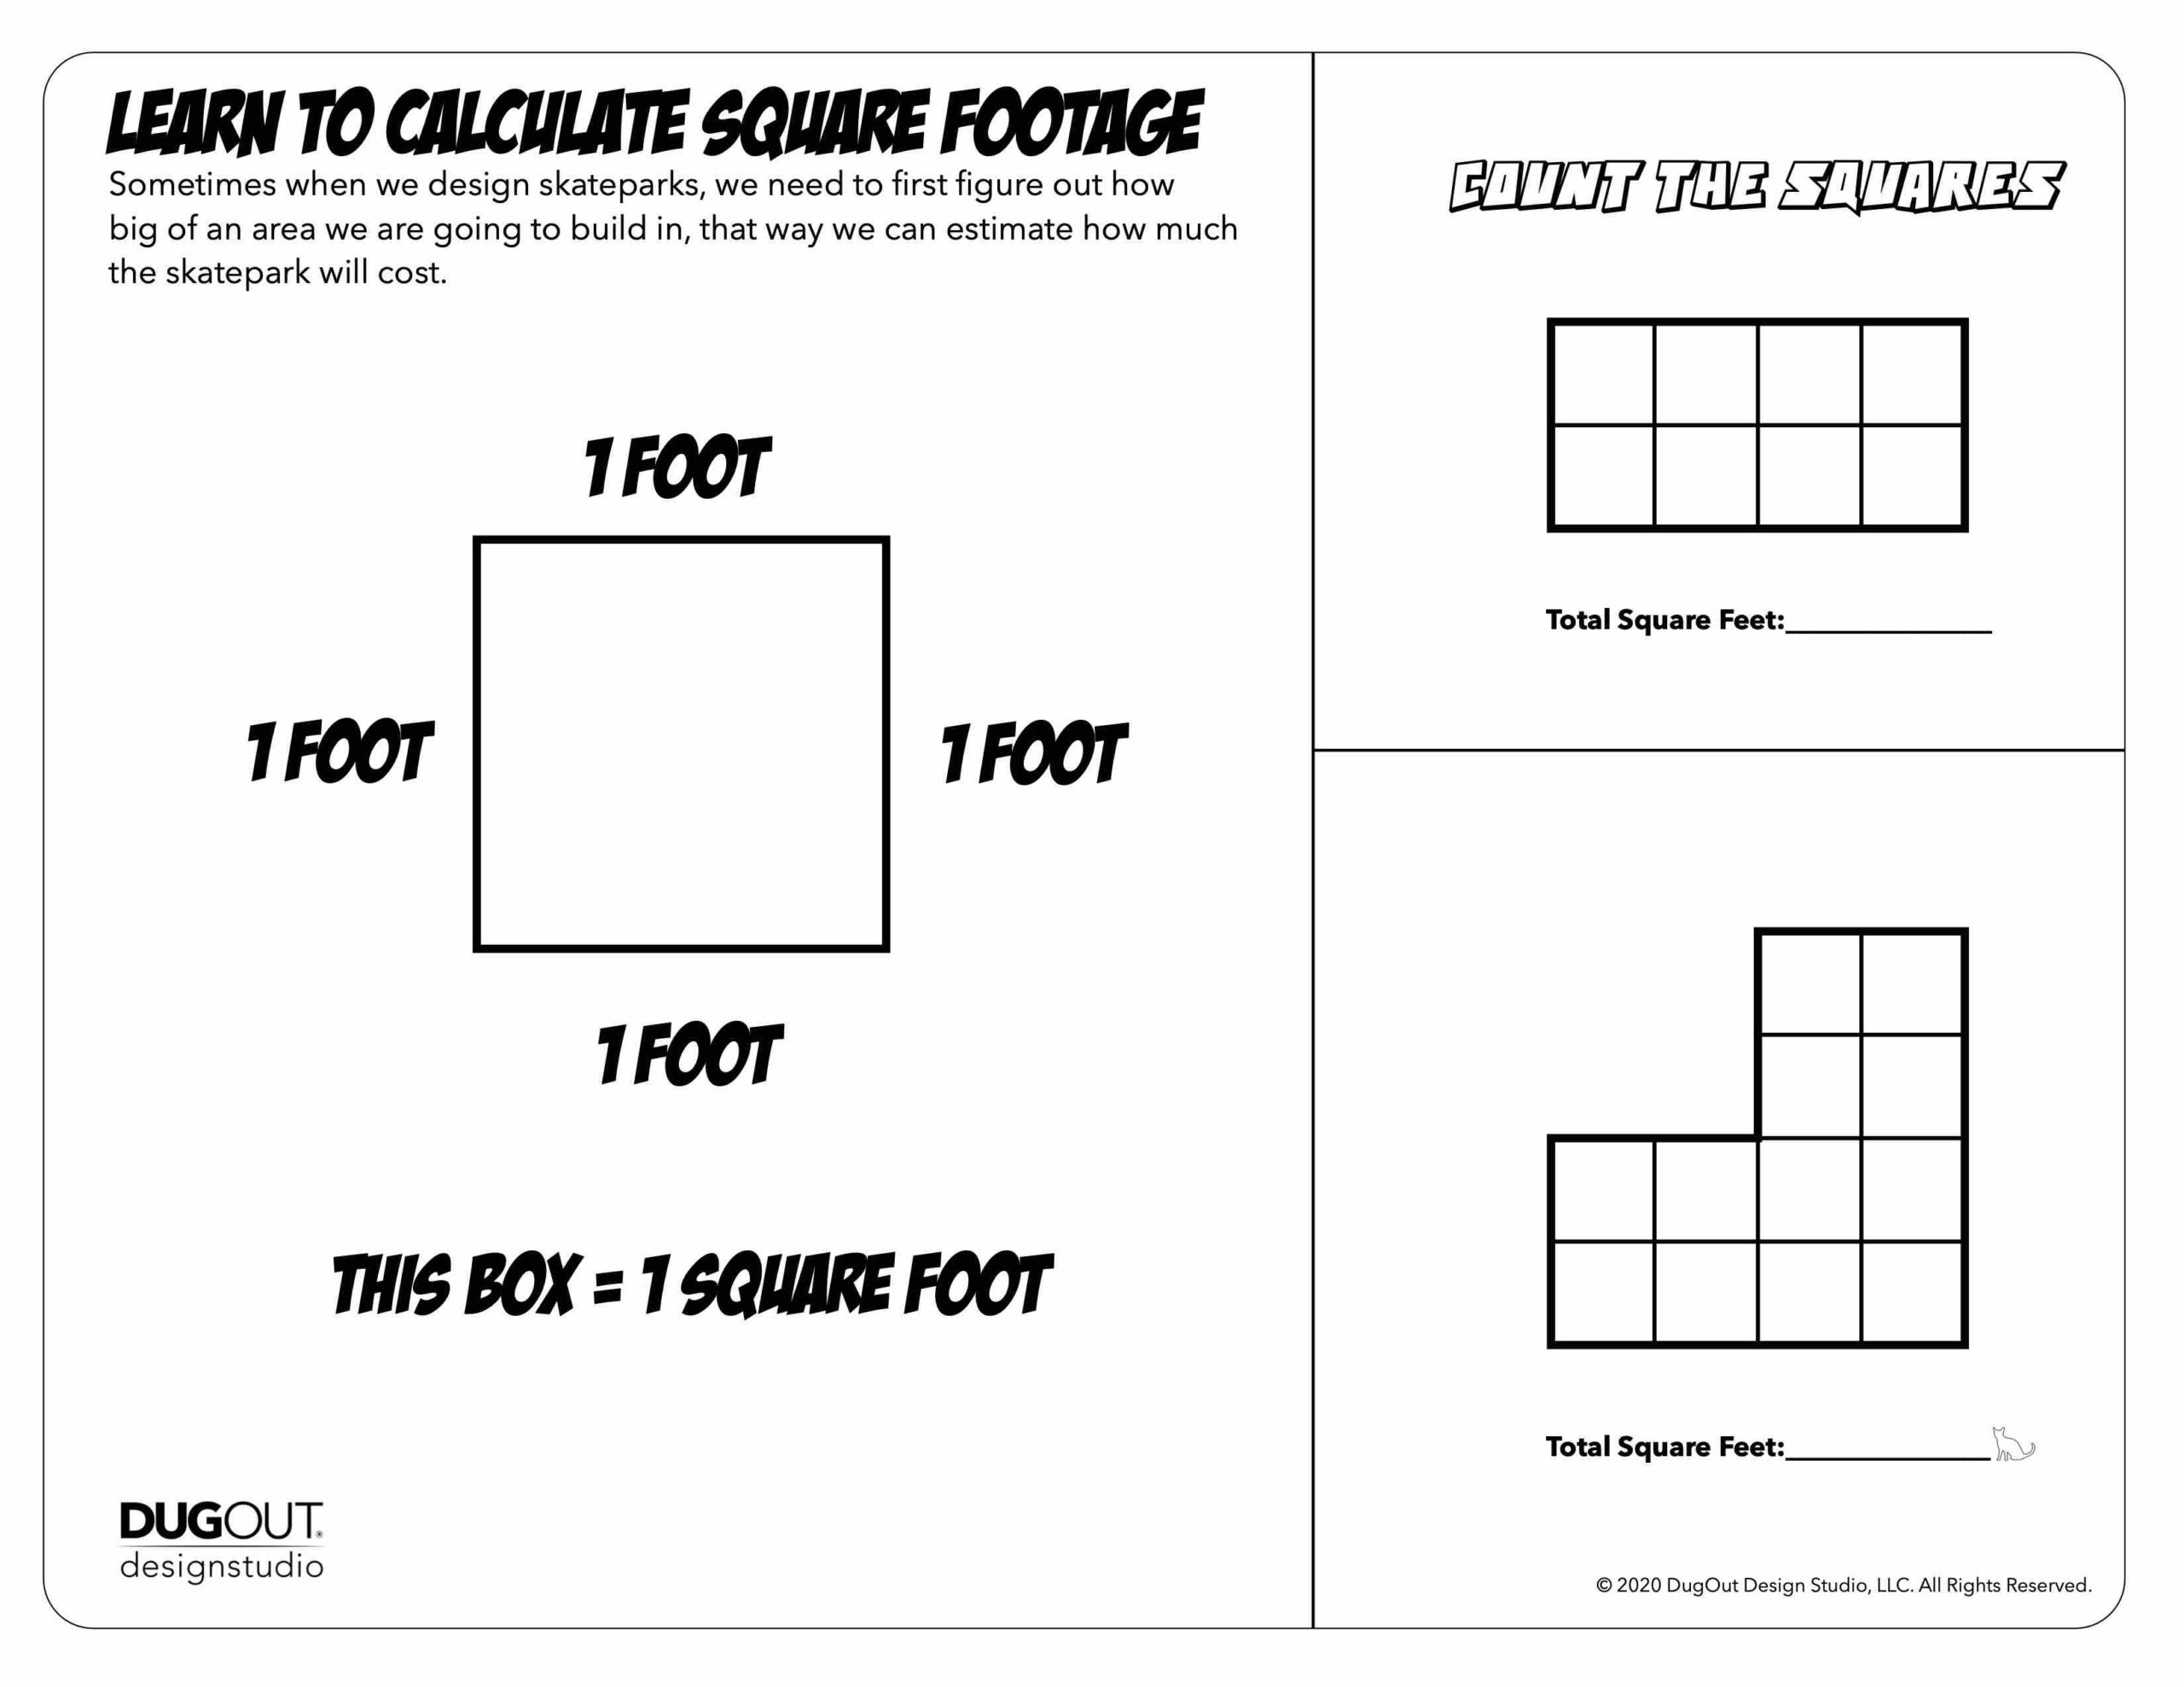 Skatepark Design Activity Page: Calculating Square Footage, Beginner